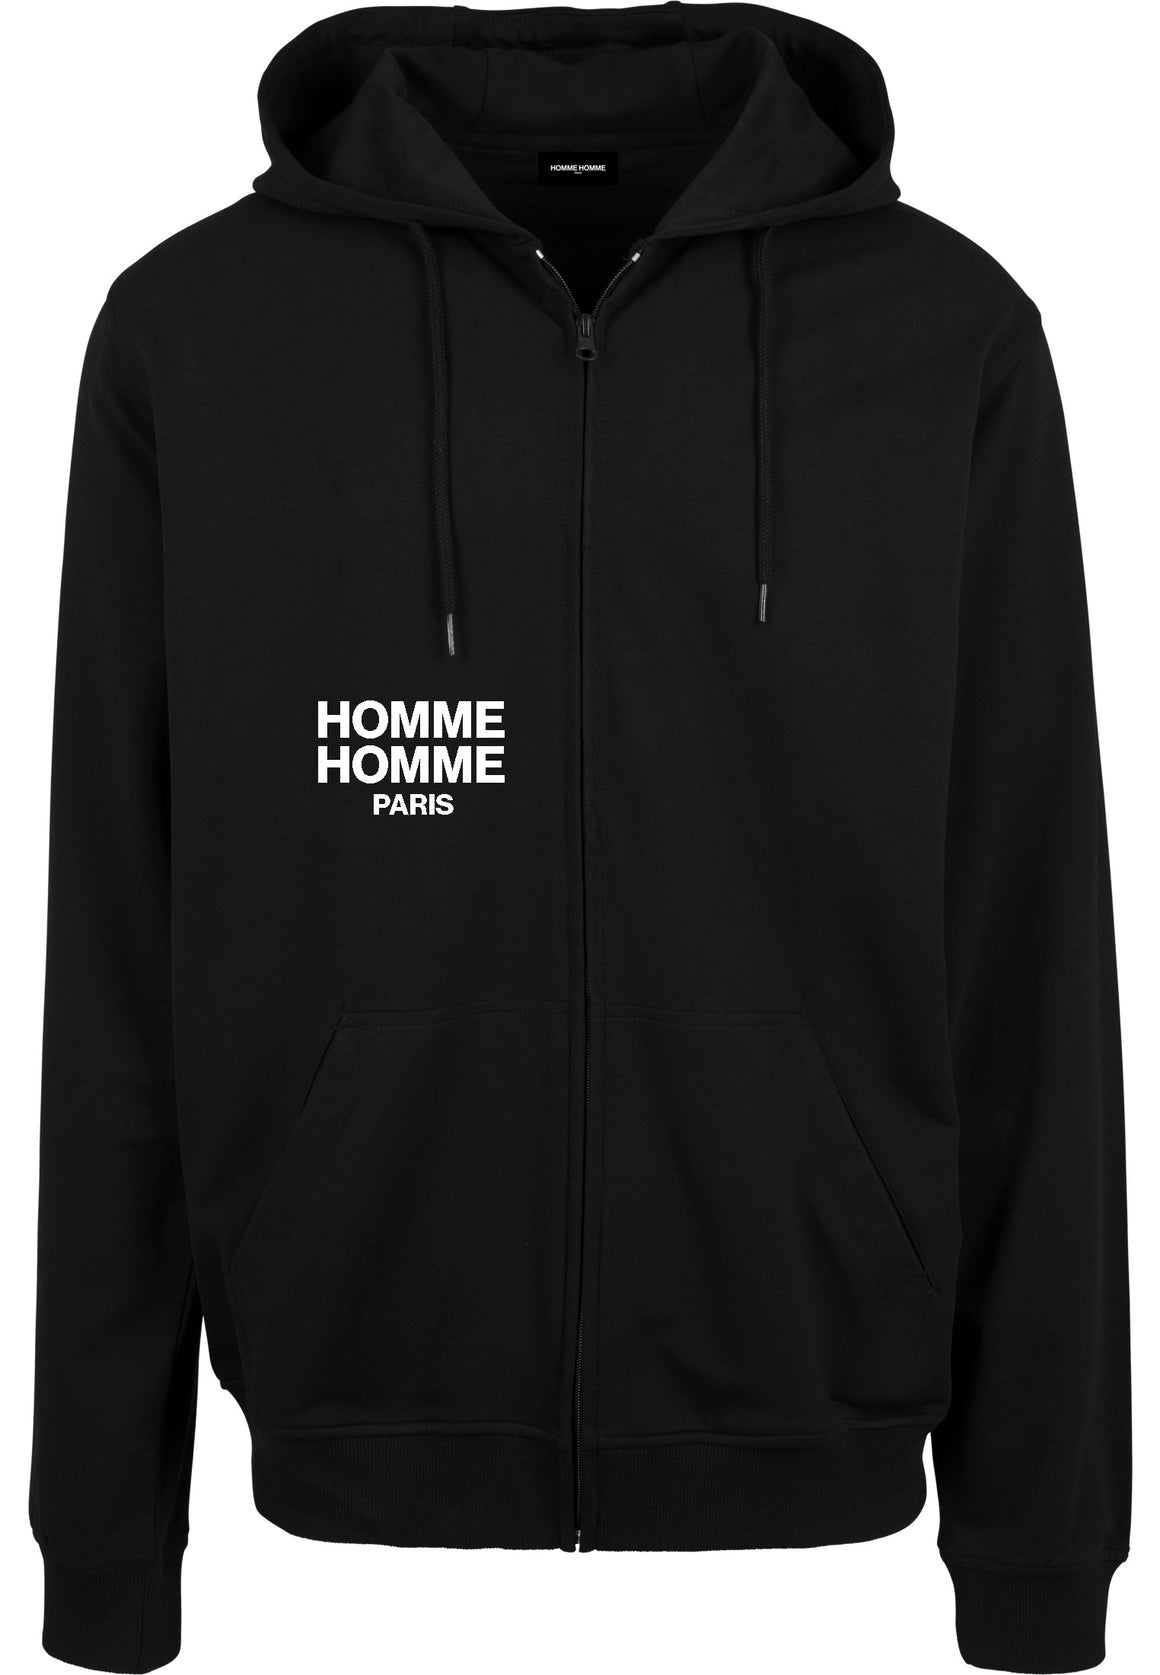 HOMME HOMME PARIS - ZIP UP HOODIE 2